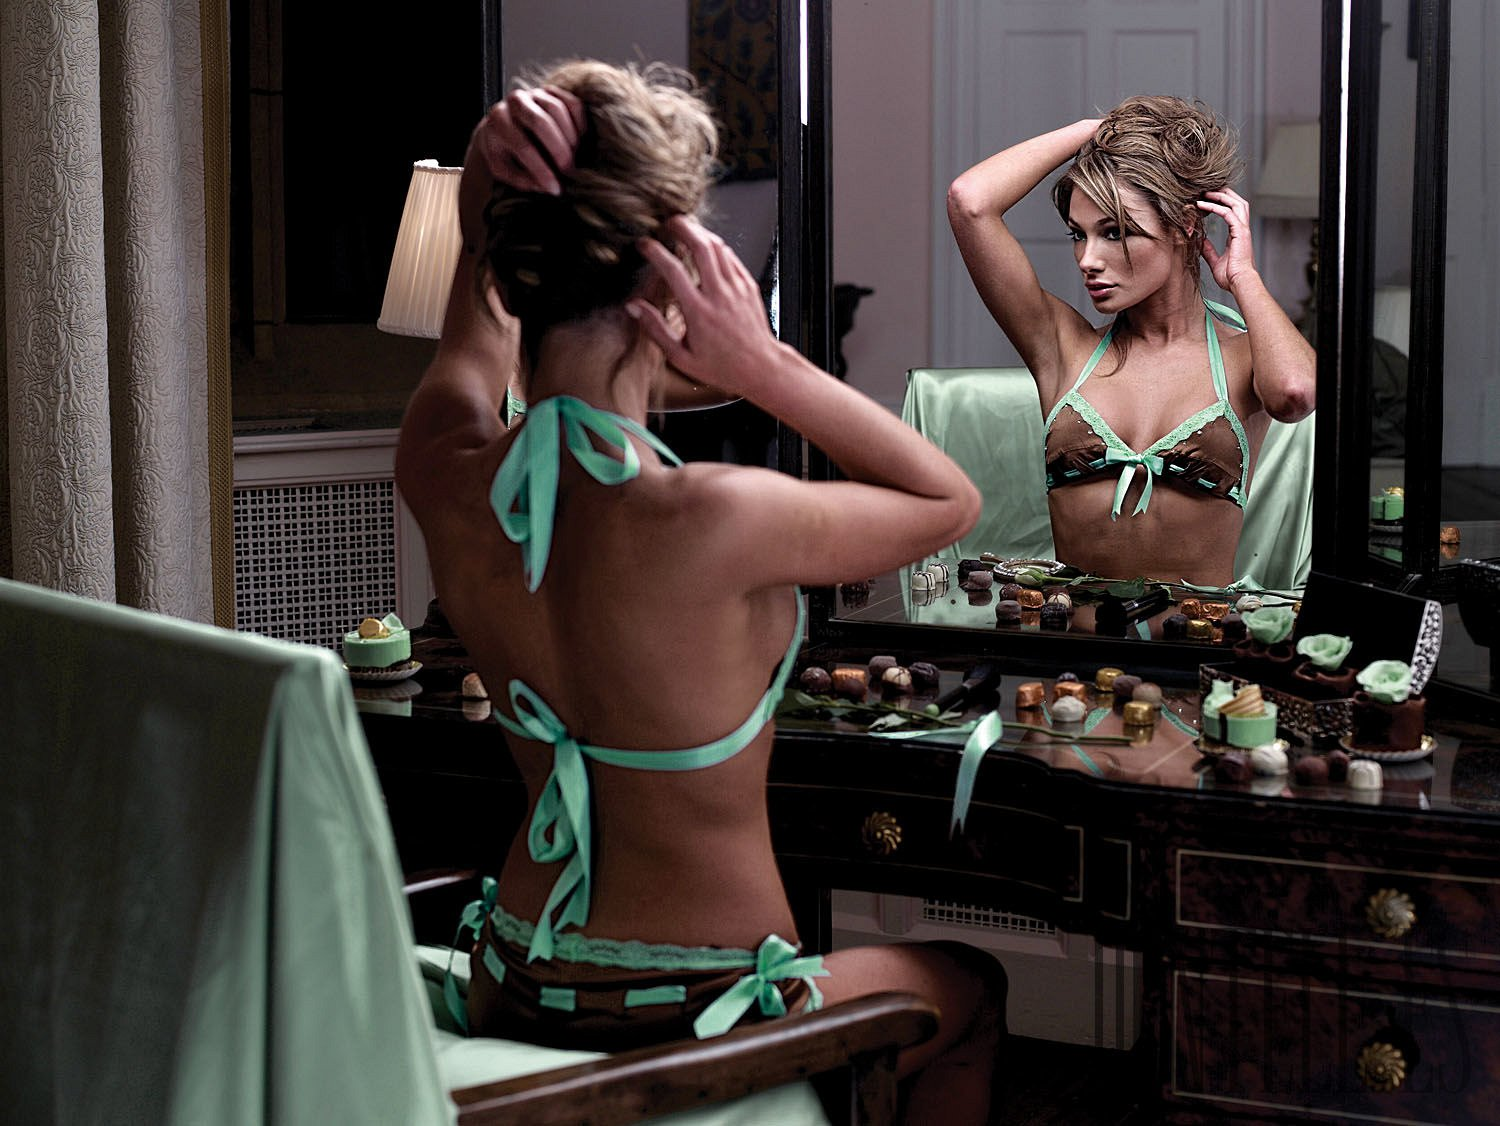 Patrick and Skinner 2007 Collection - Lingerie - 1